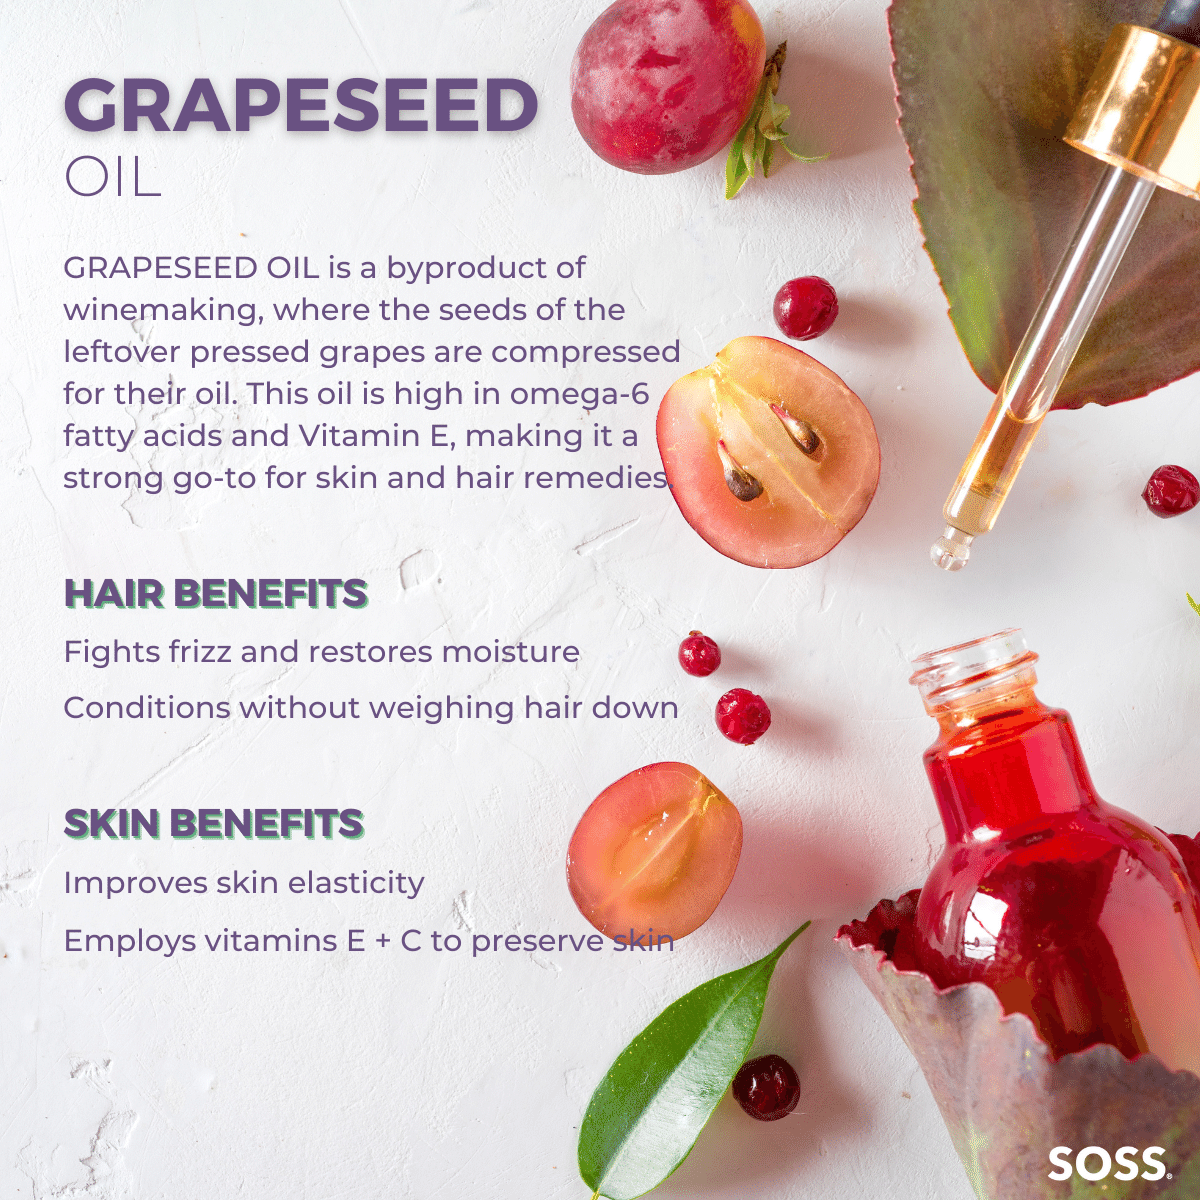 Grapeseed Oil is a nutrient-rich oil that moisturizes skin without a greasy feel.